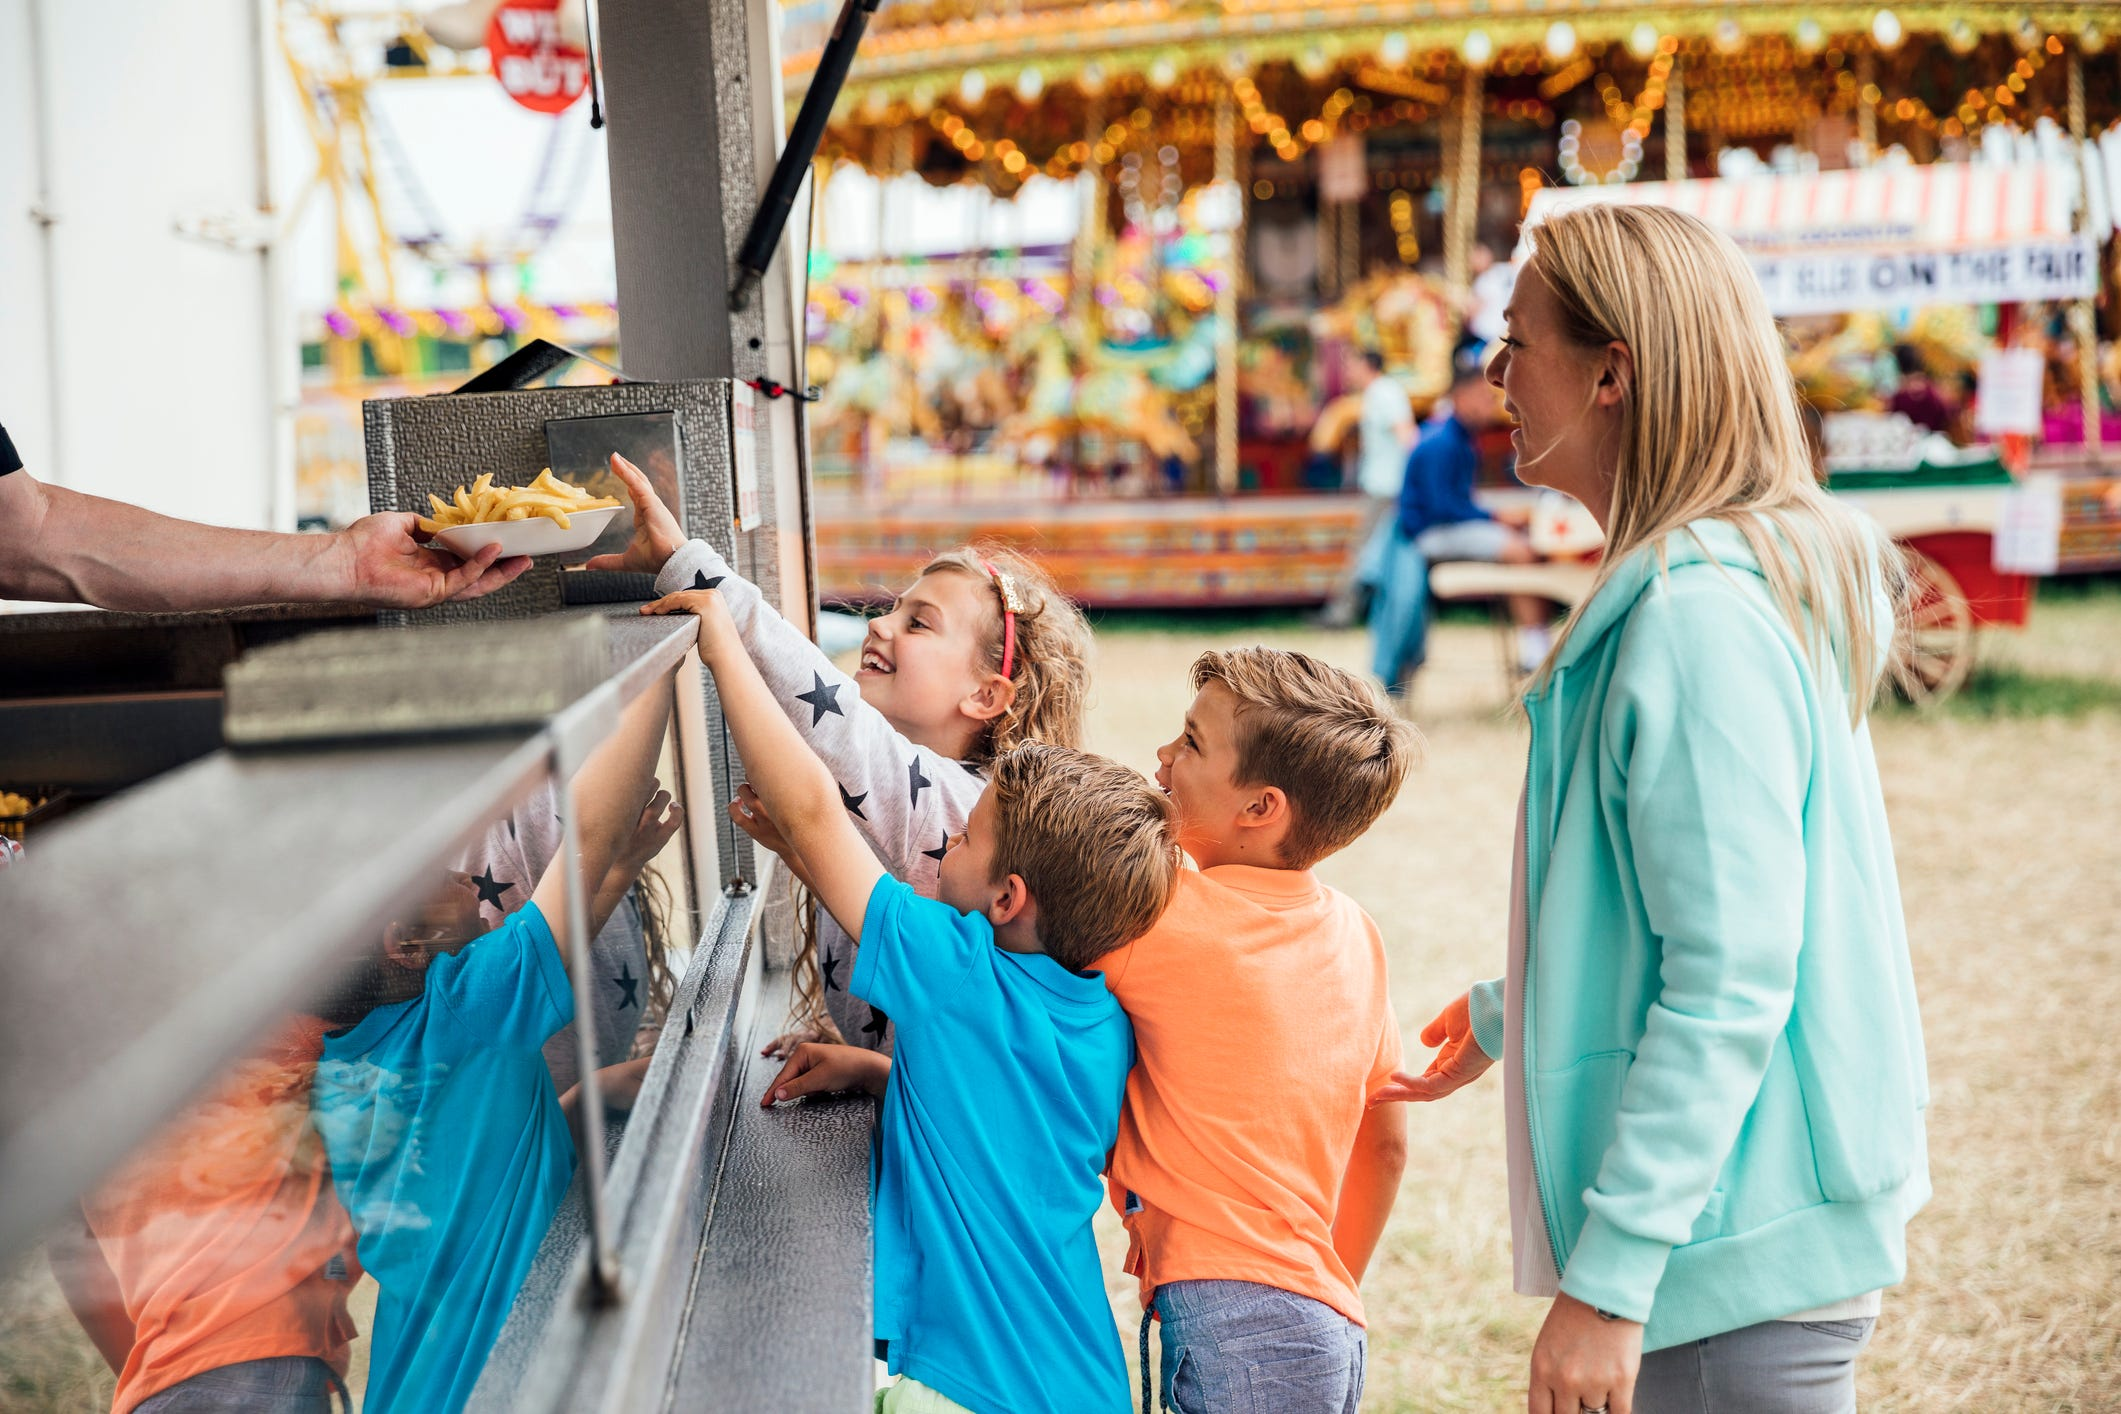 The strangest foods you'll find at the state fair   USA Today